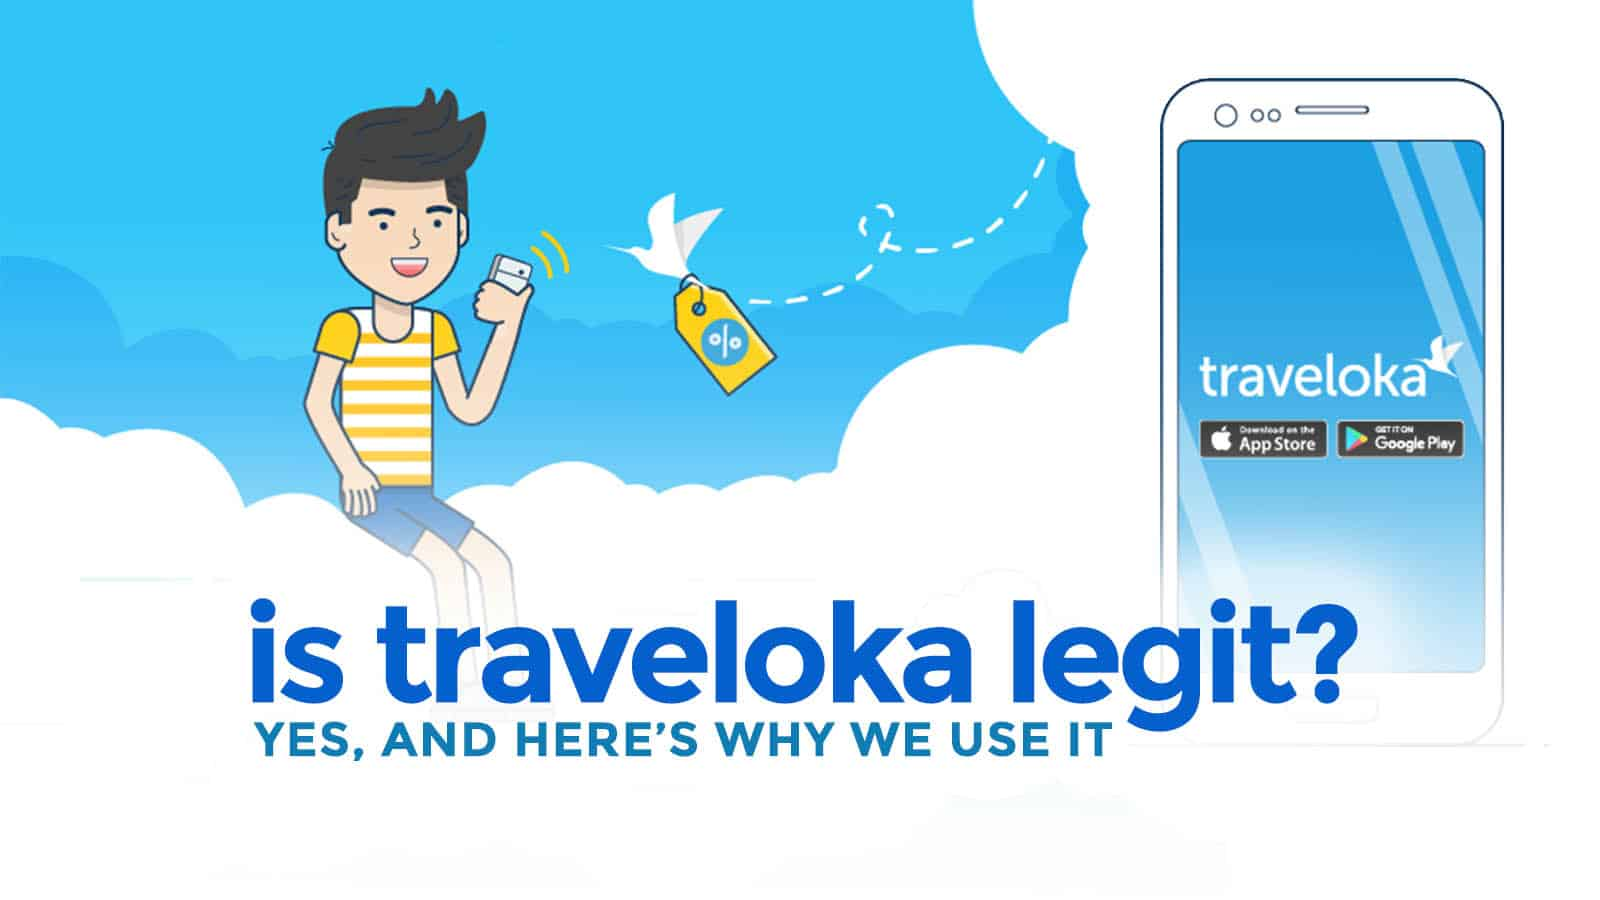 IS TRAVELOKA LEGIT? Yes! And Here are 6 Reasons Why We Use It